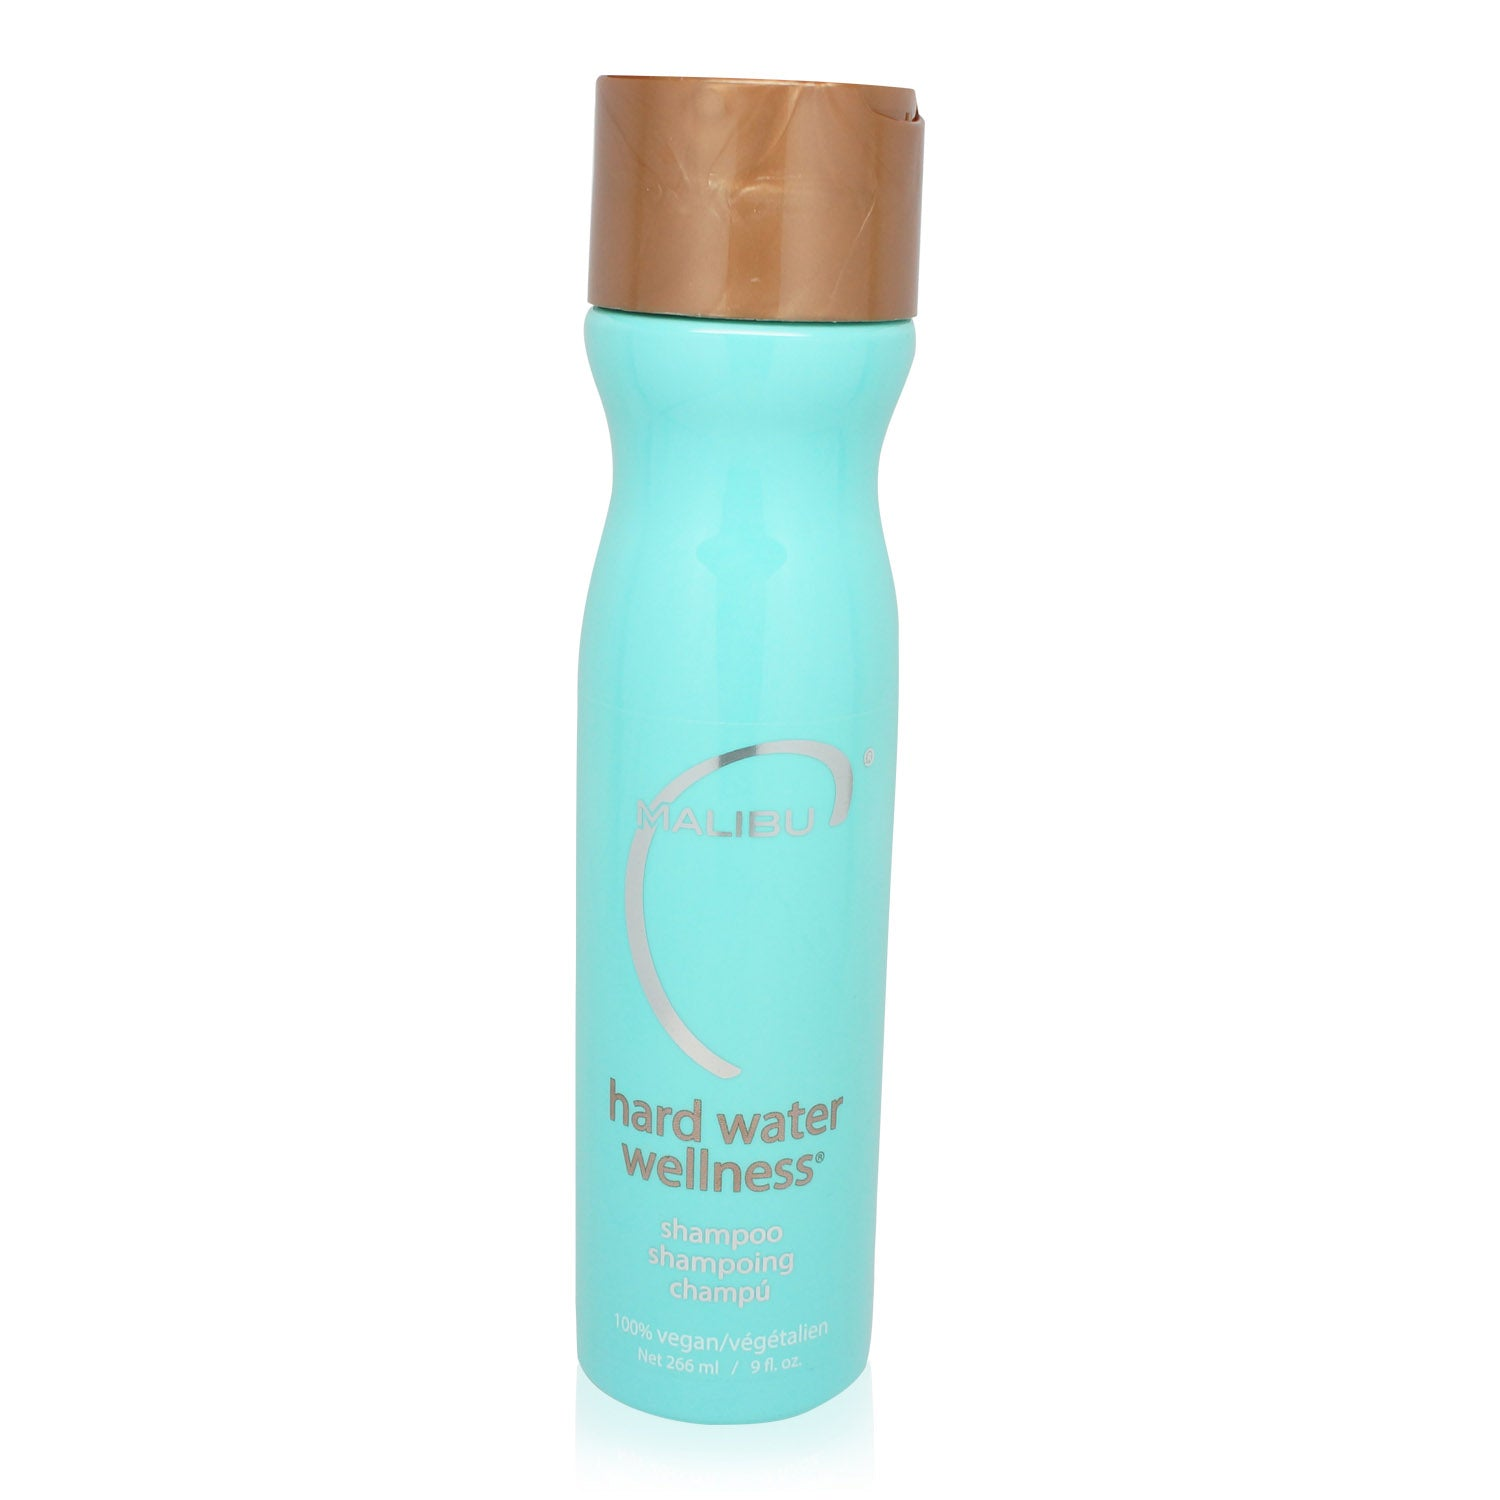 MALIBU ~ HARD WATER WELLNESS SHAMPOO 9 oz